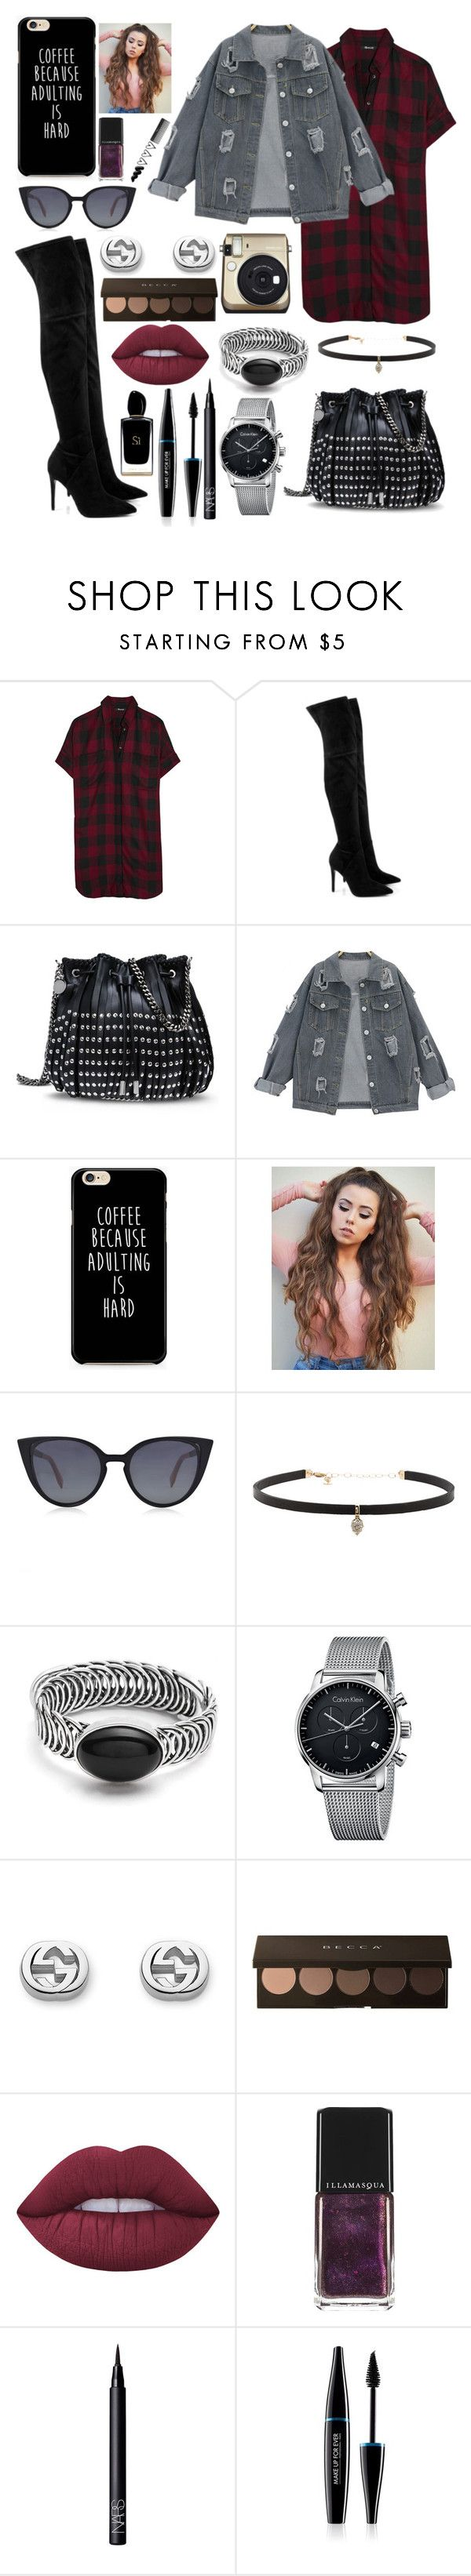 """""""Glam LOOK"""" by polina18necko ❤ liked on Polyvore featuring Madewell, Kendall + Kylie, STELLA McCARTNEY, Fendi, Carbon & Hyde, Calvin Klein, Gucci, Lime Crime, Illamasqua and NARS Cosmetics"""